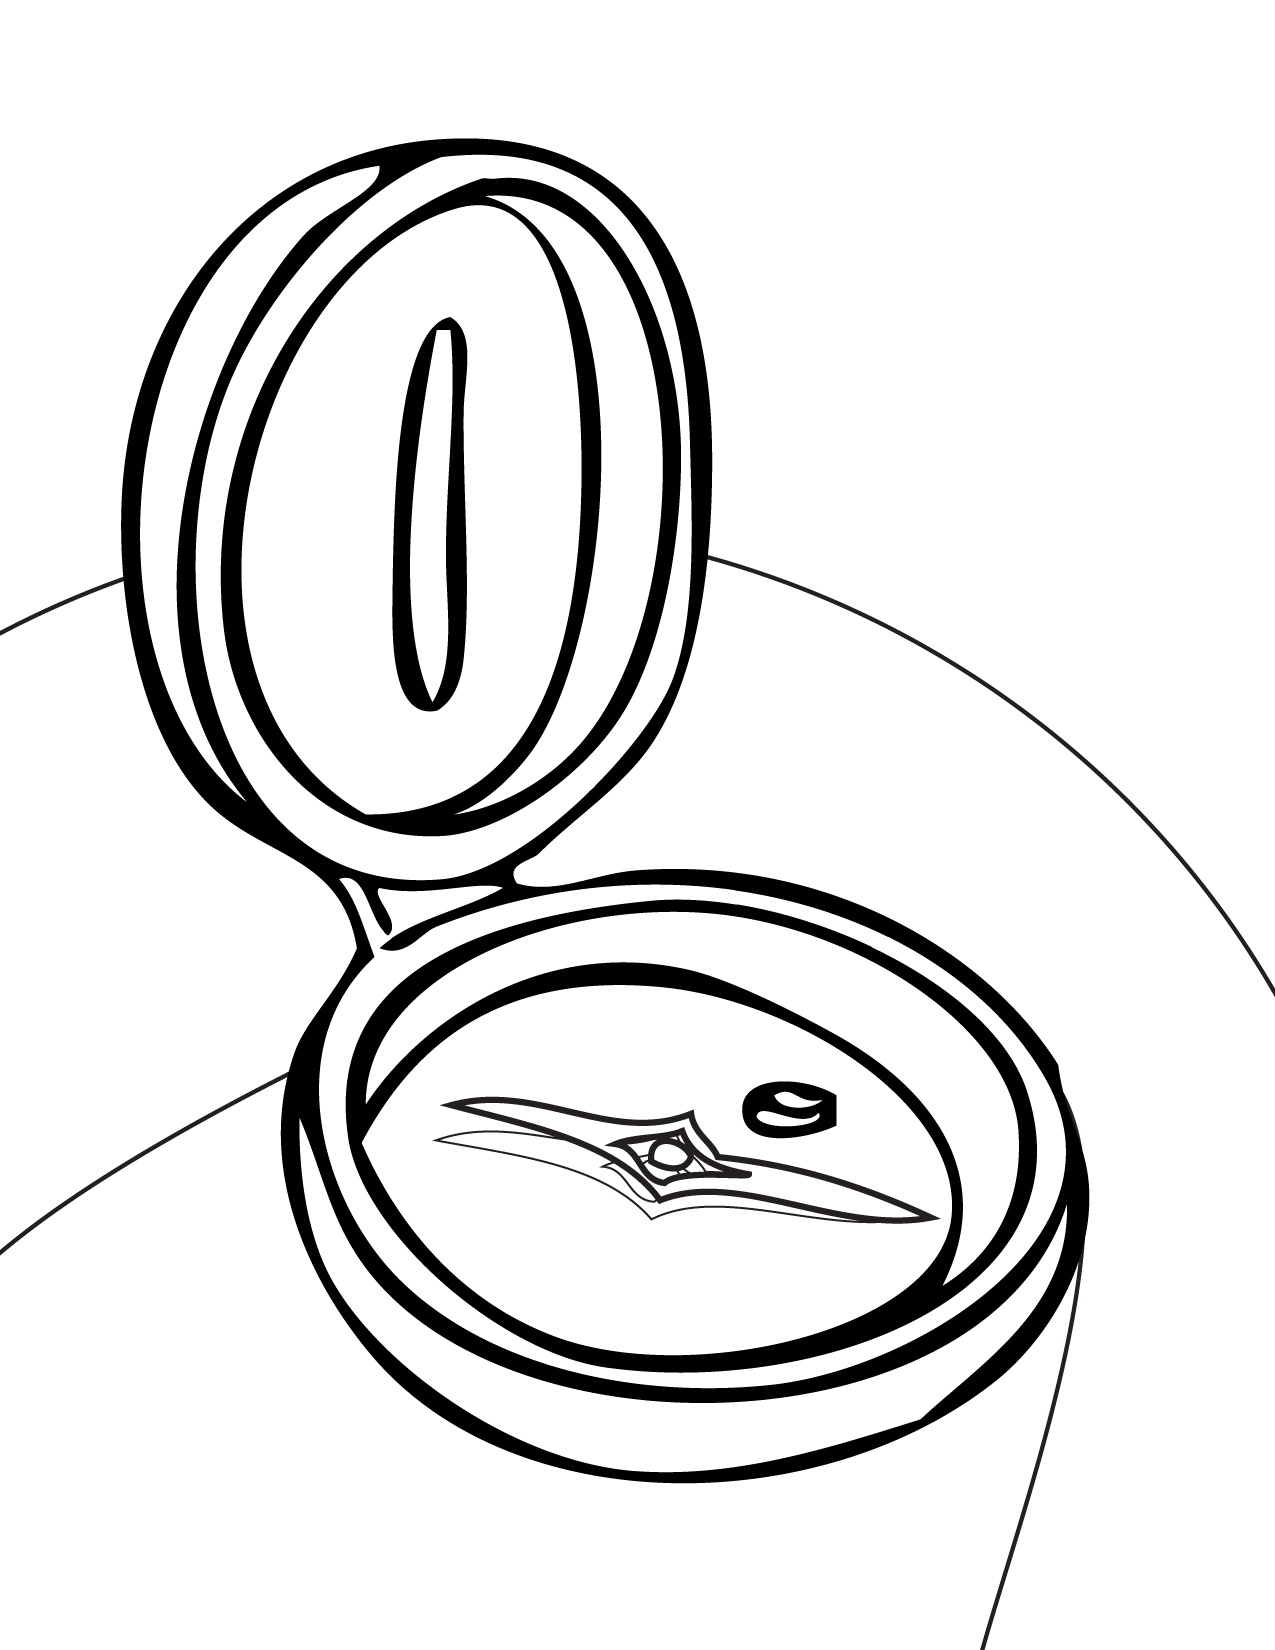 1275x1650 Thomas Edison Inventions Coloring Page Thomas Edison Pictures